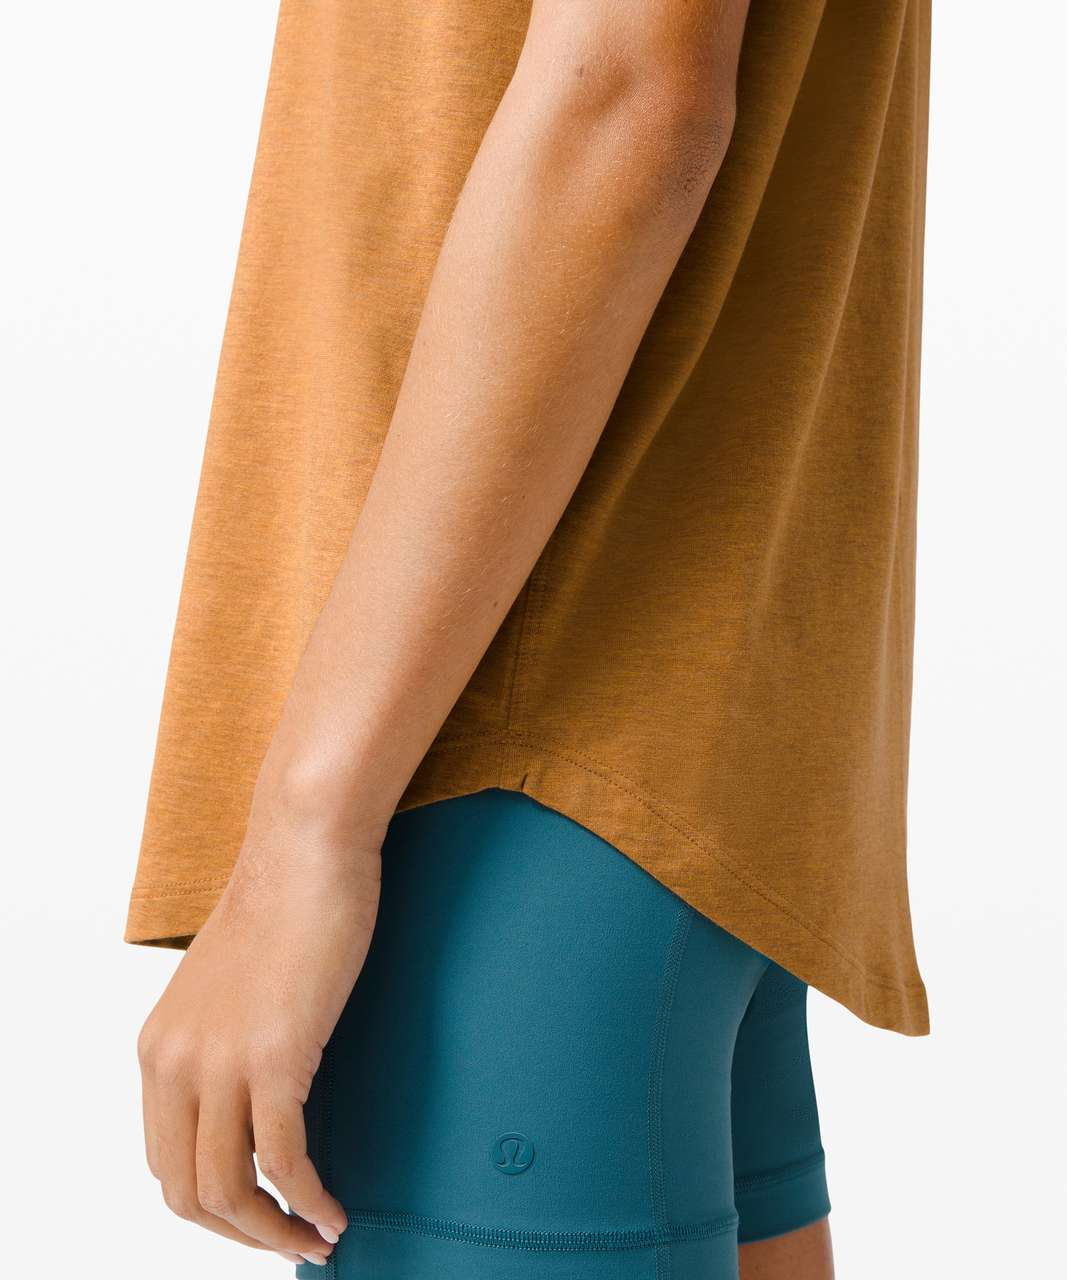 Lululemon Brunswick Muscle Tank - Heathered Spiced Bronze